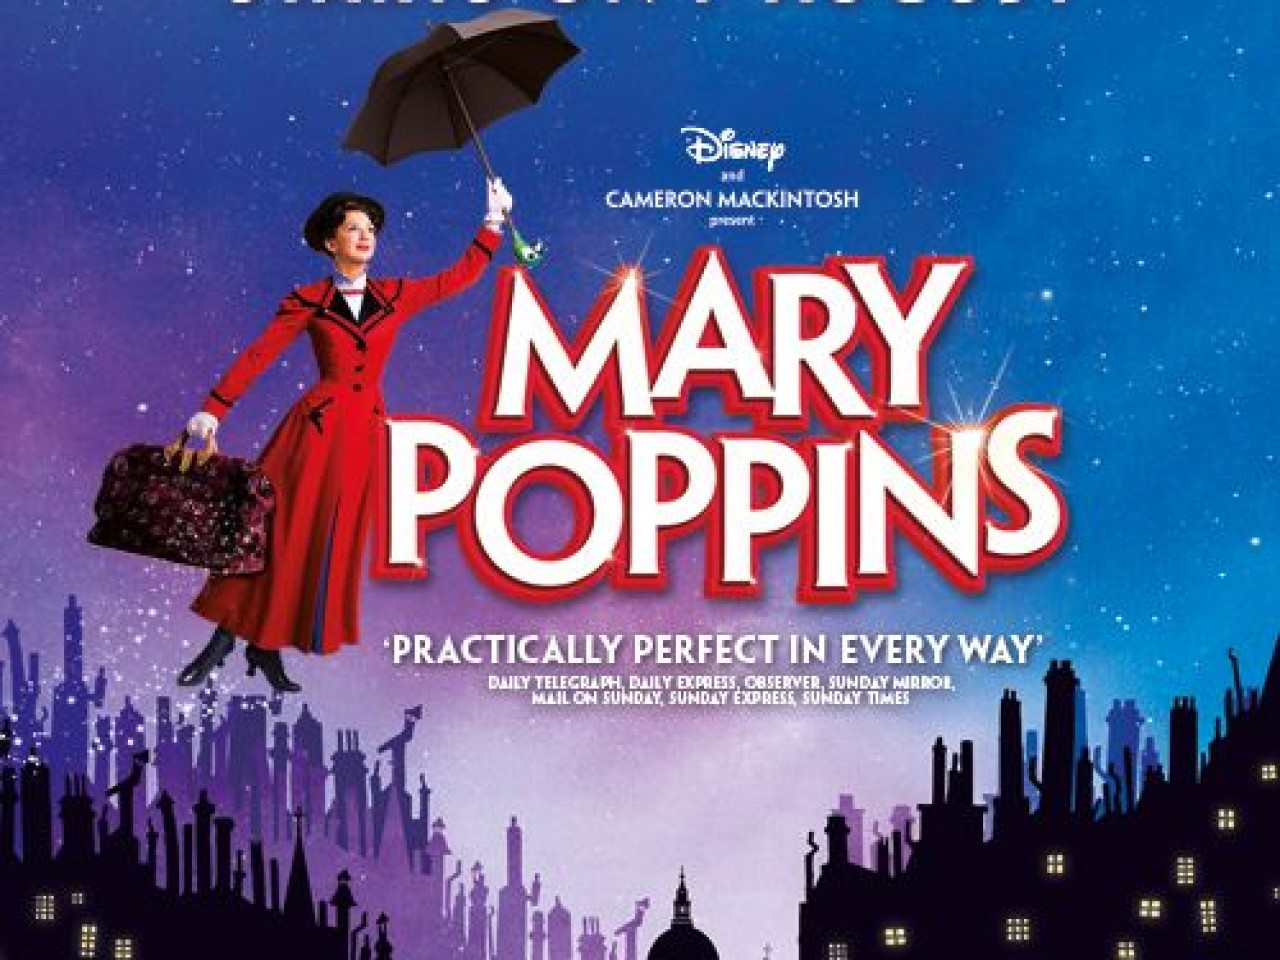 Mary Poppins Hotel & Ticket packages